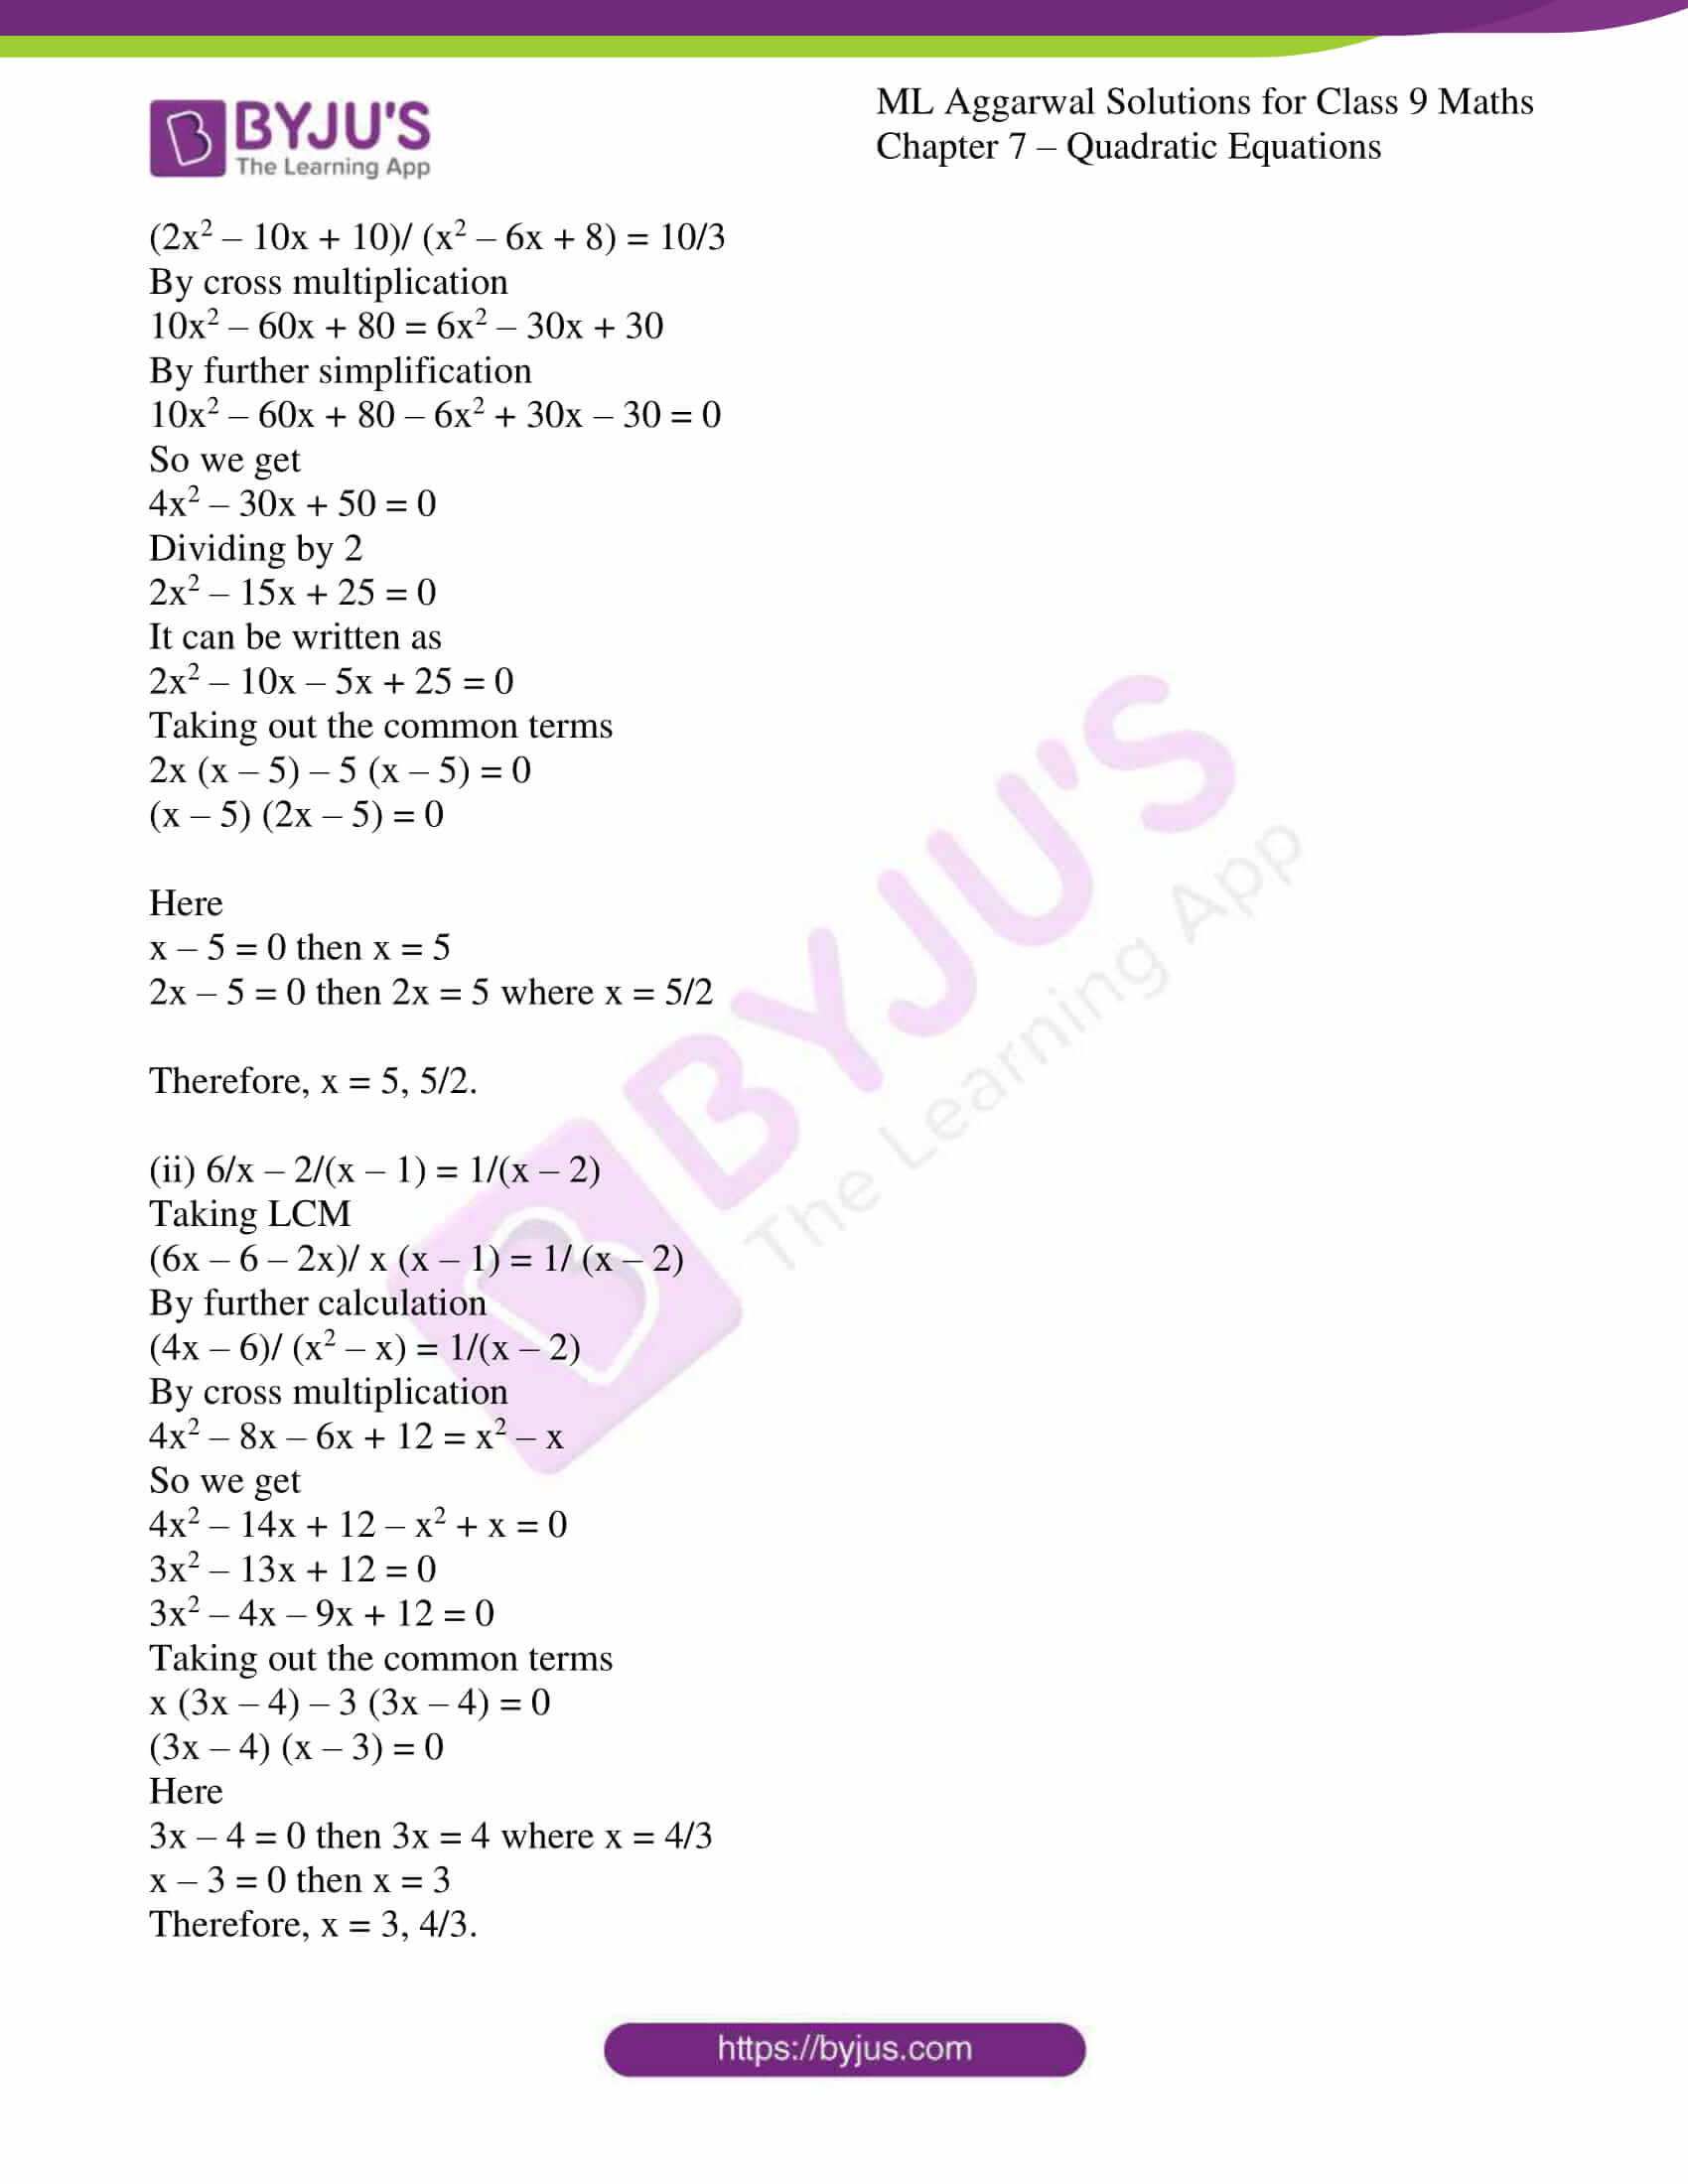 ml aggarwal solutions for class 9 maths chapter 7 13